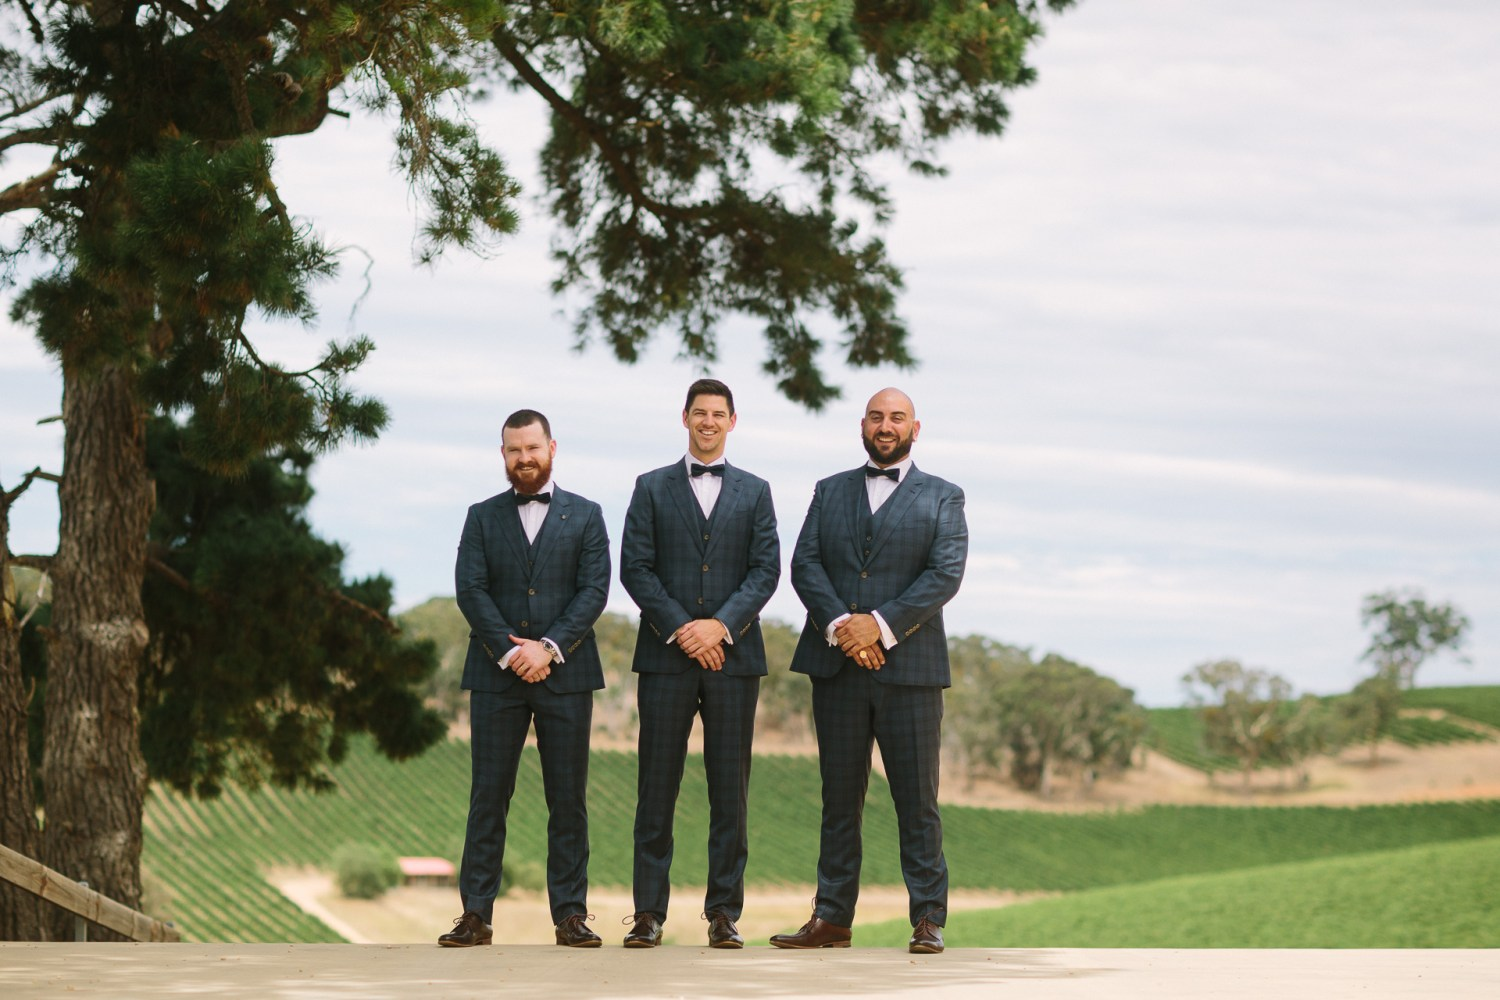 longview winery wedding, groomsmen dapper suits